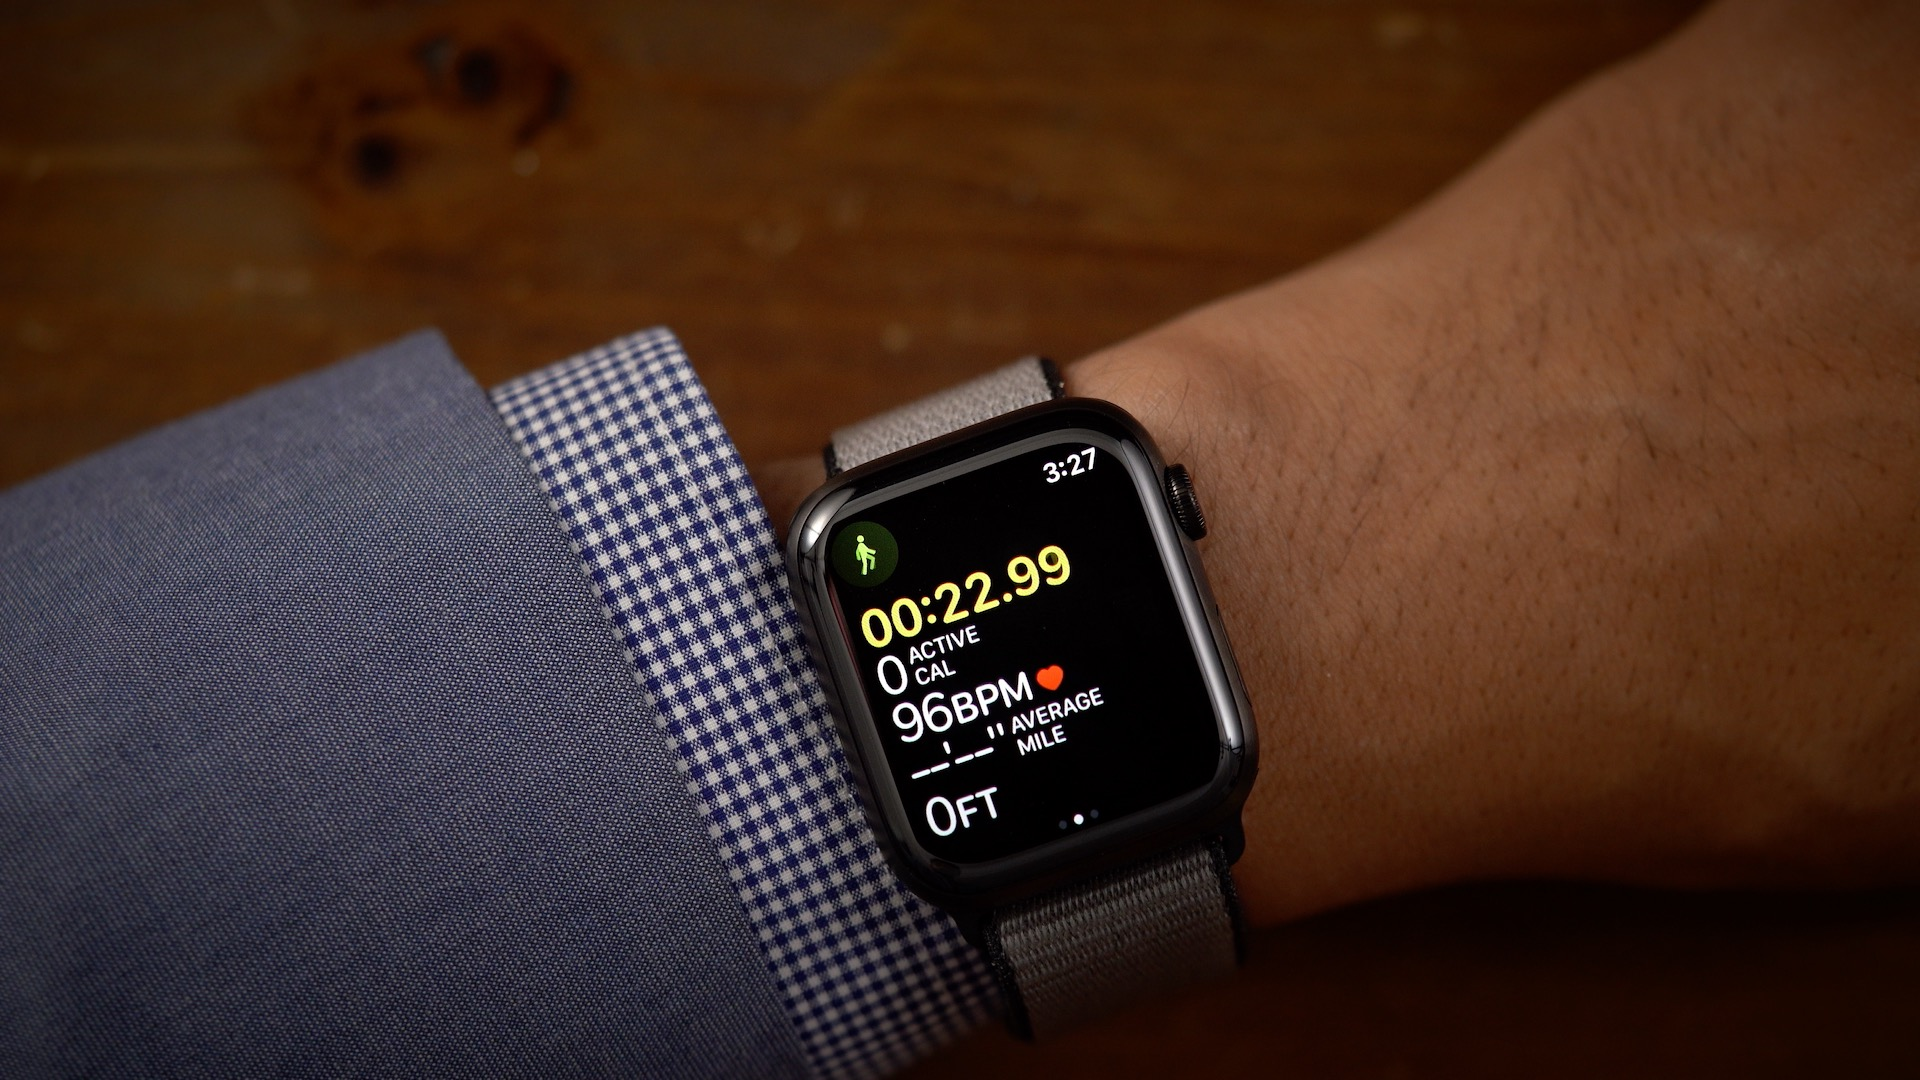 Update More Deals Apple Watch Series 4 5 All Time Lows With Up To 250 Off 9to5toys